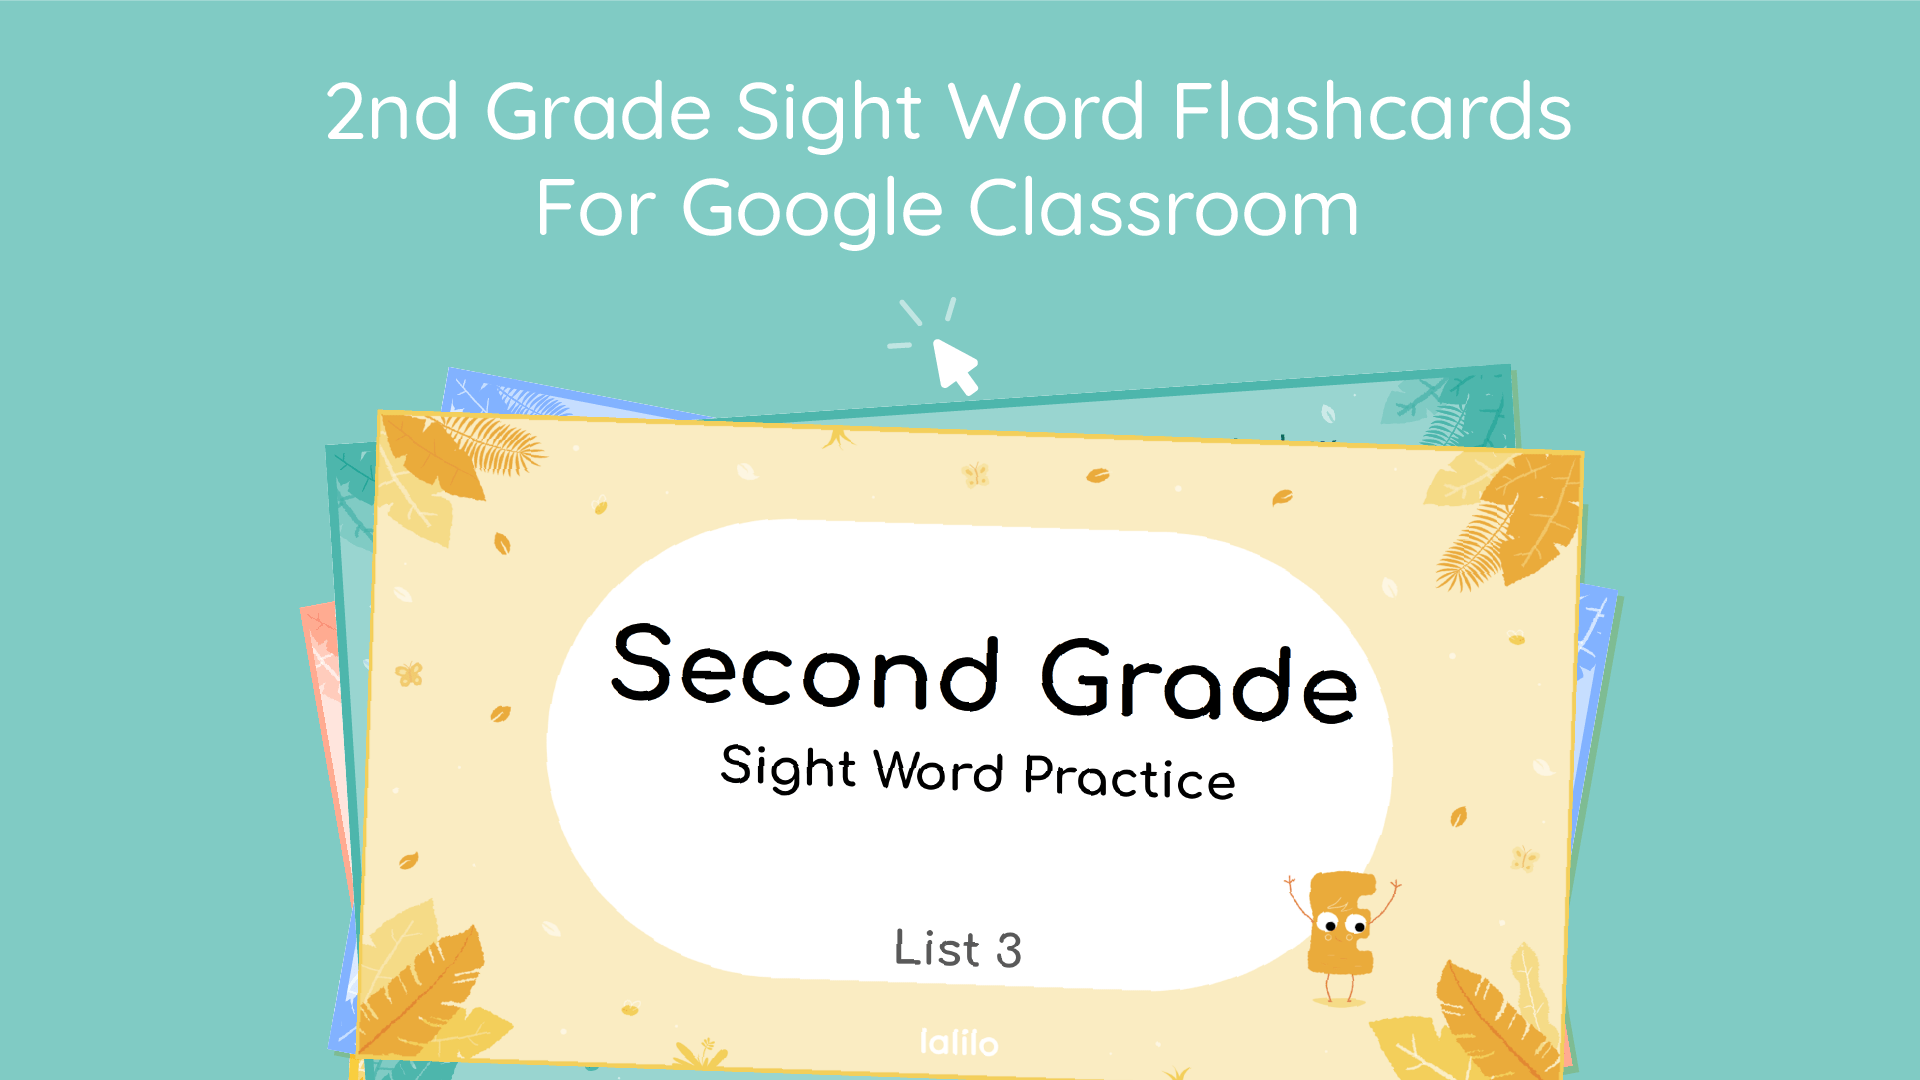 hight resolution of Second Grade Sight Word Flashcards for Google Classroom - Lalilo Blog